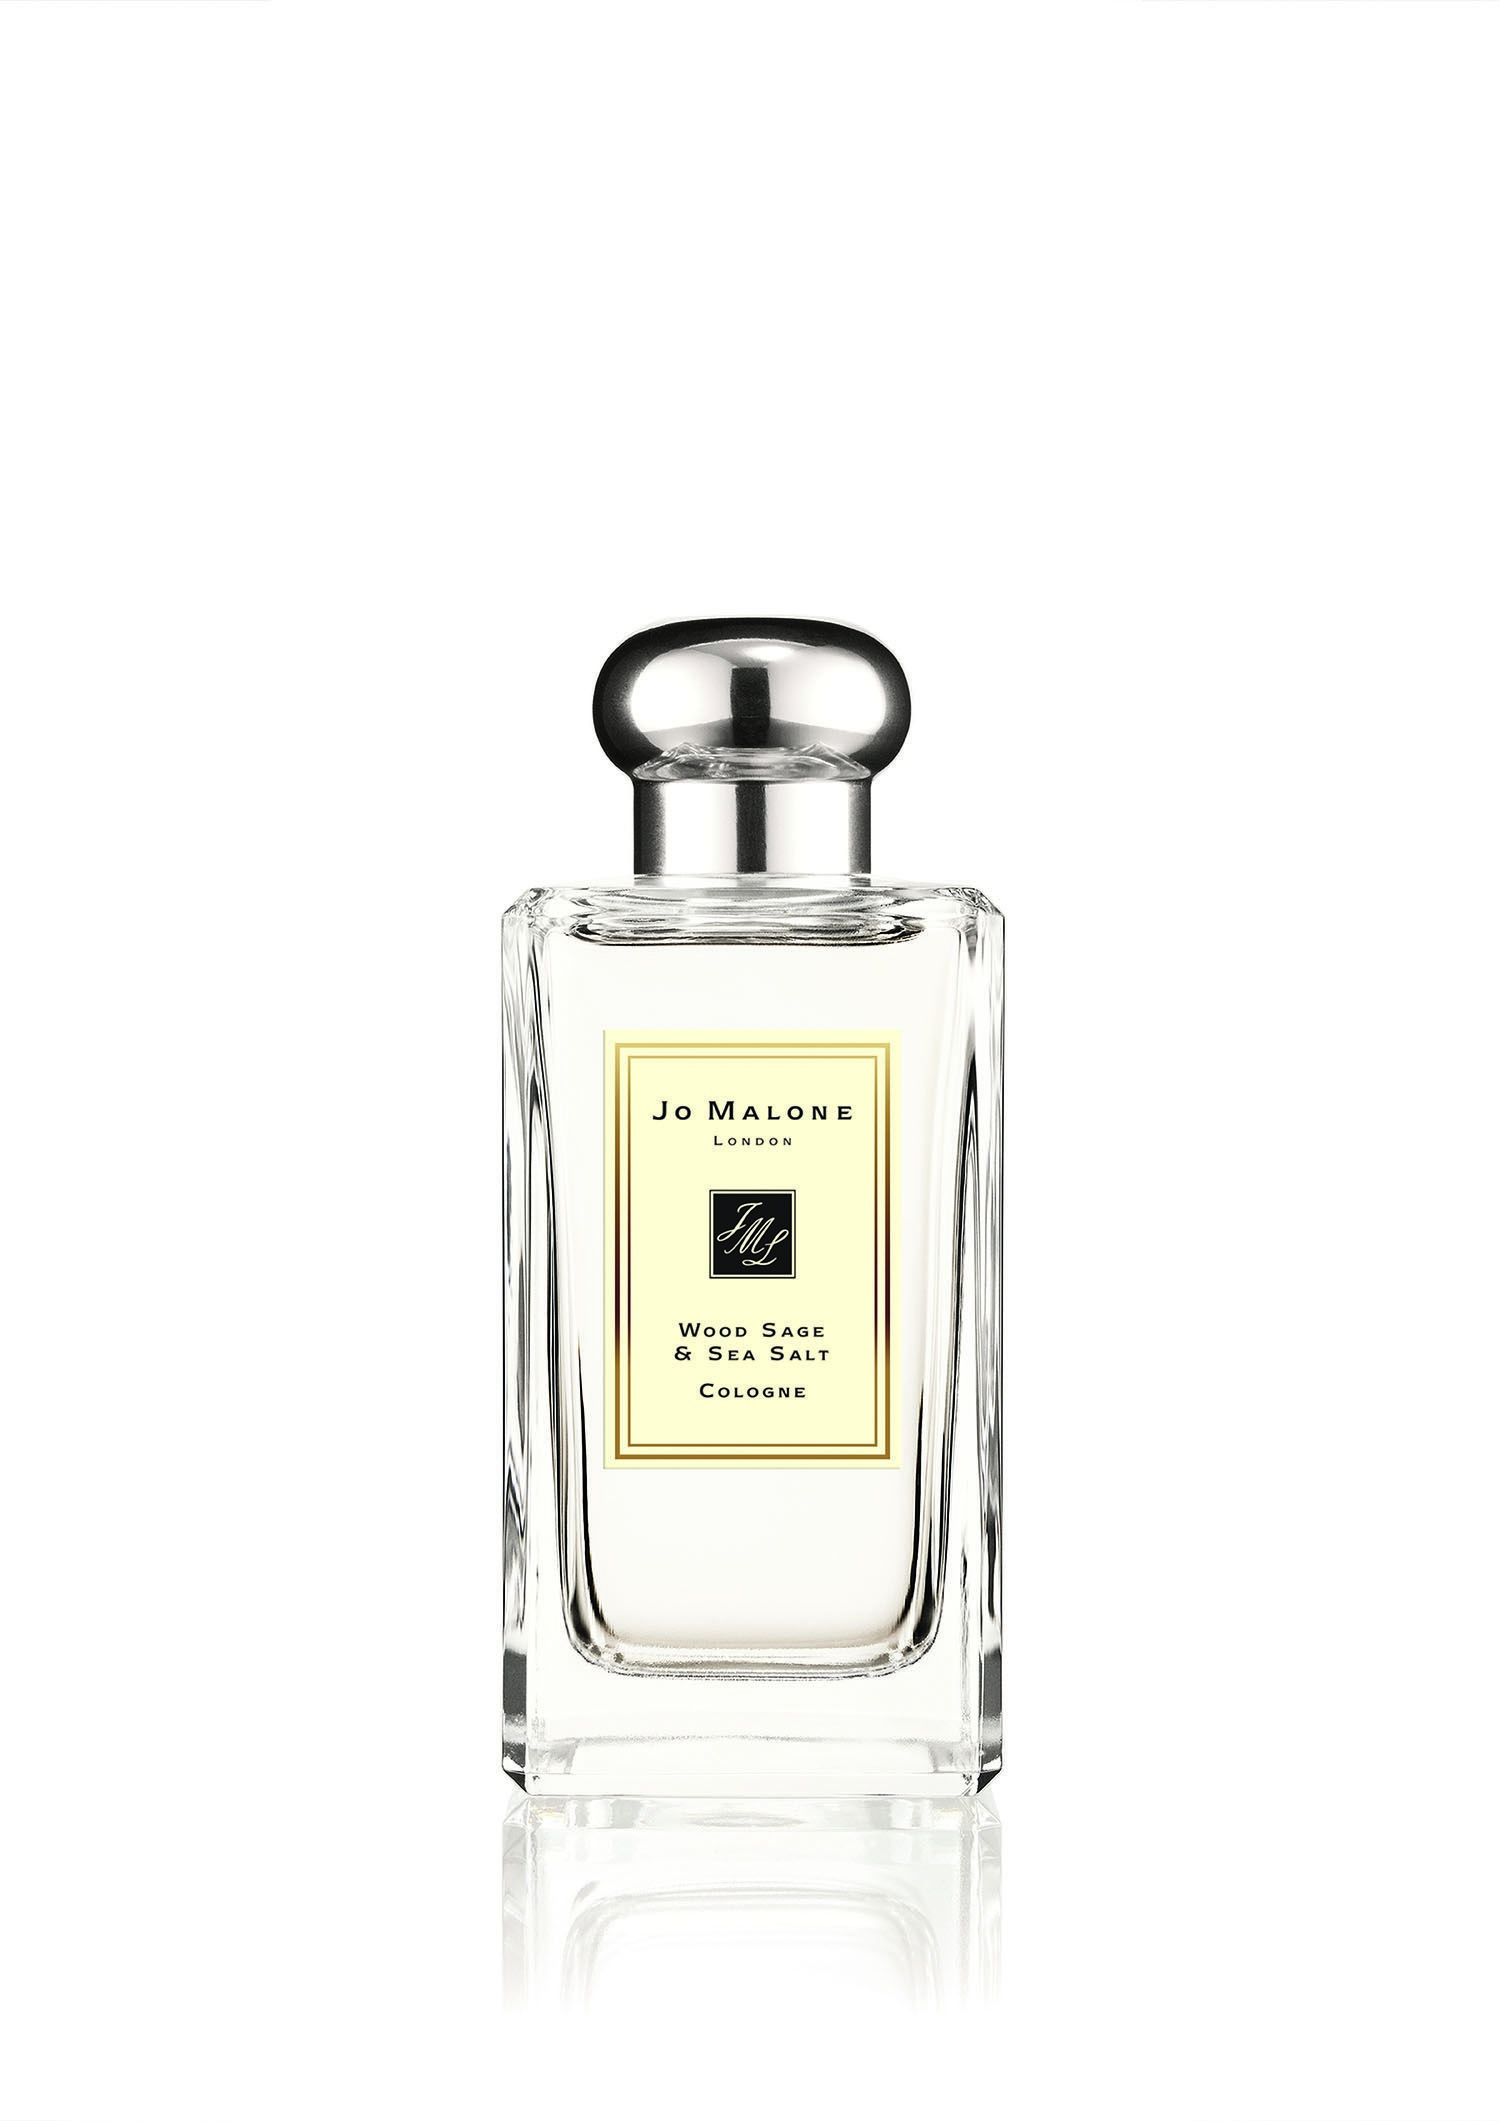 Jo MALONE, WOOD SAGE & SEA SALT CLOGNE, 13만2천원(50ml)